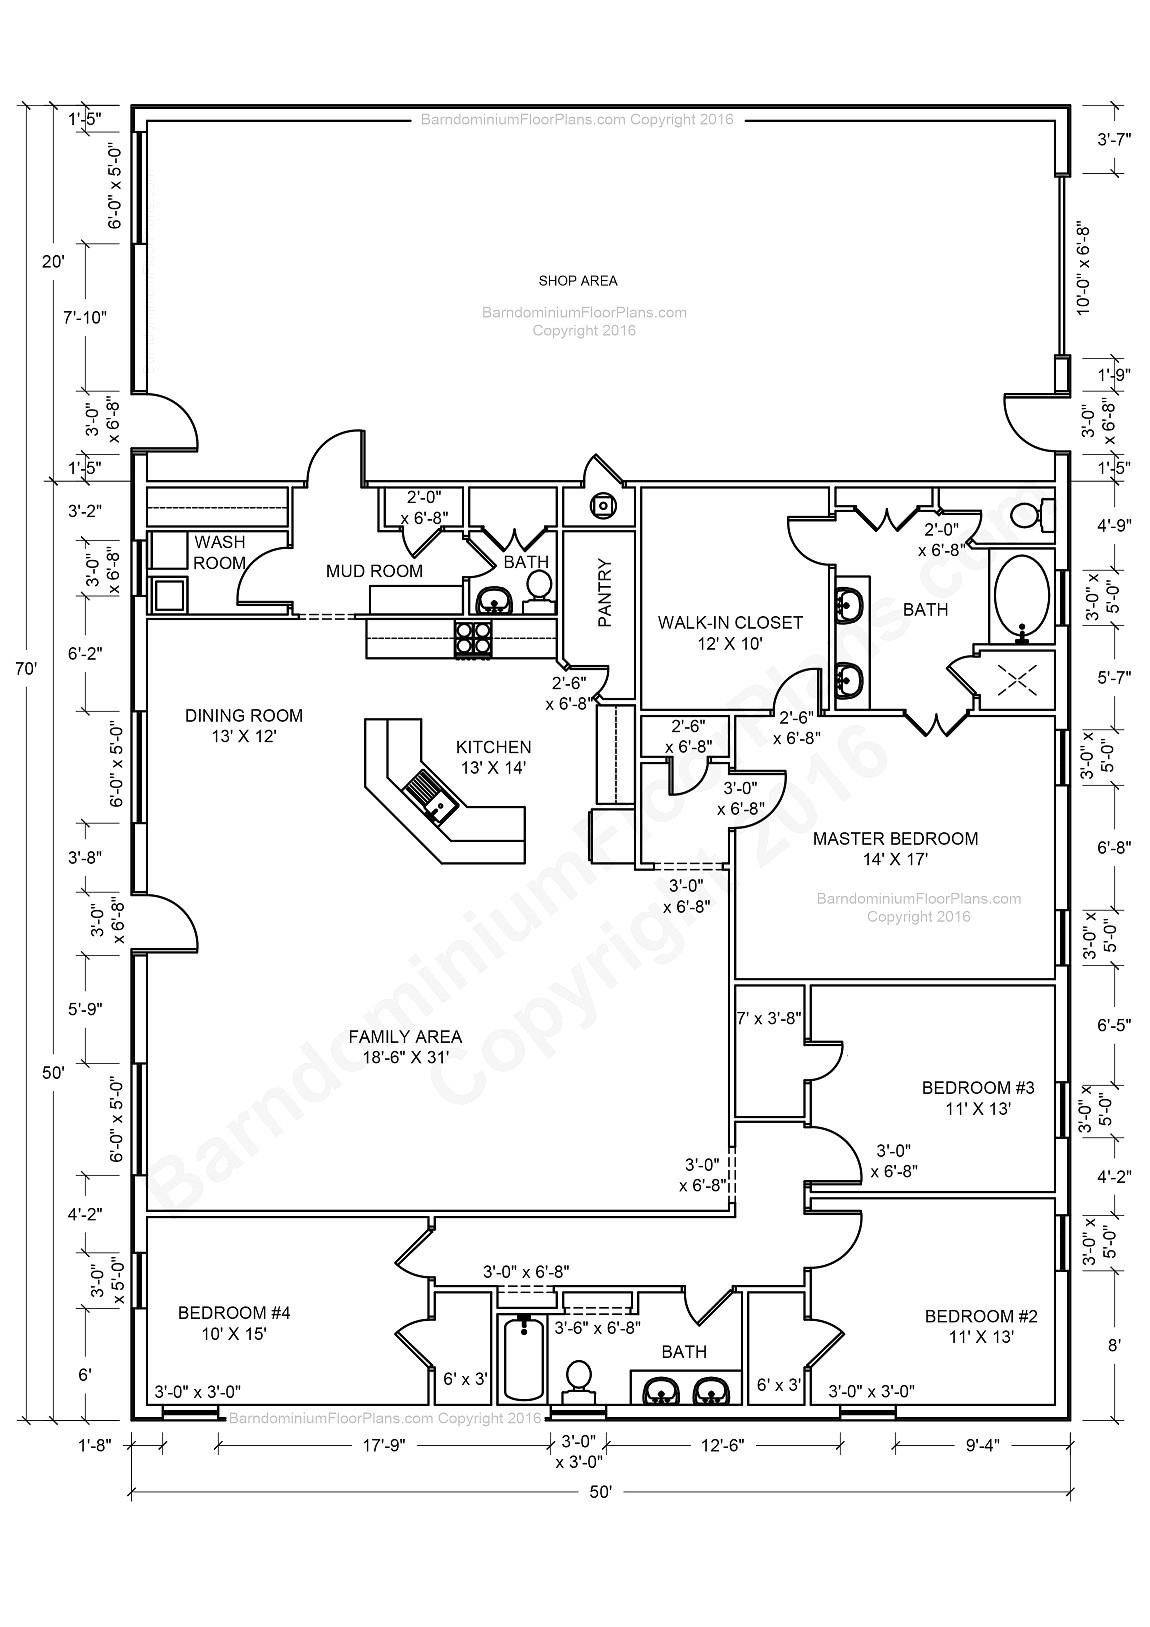 stick built homes floor plans building house plans new building plan drawings inspirational plans